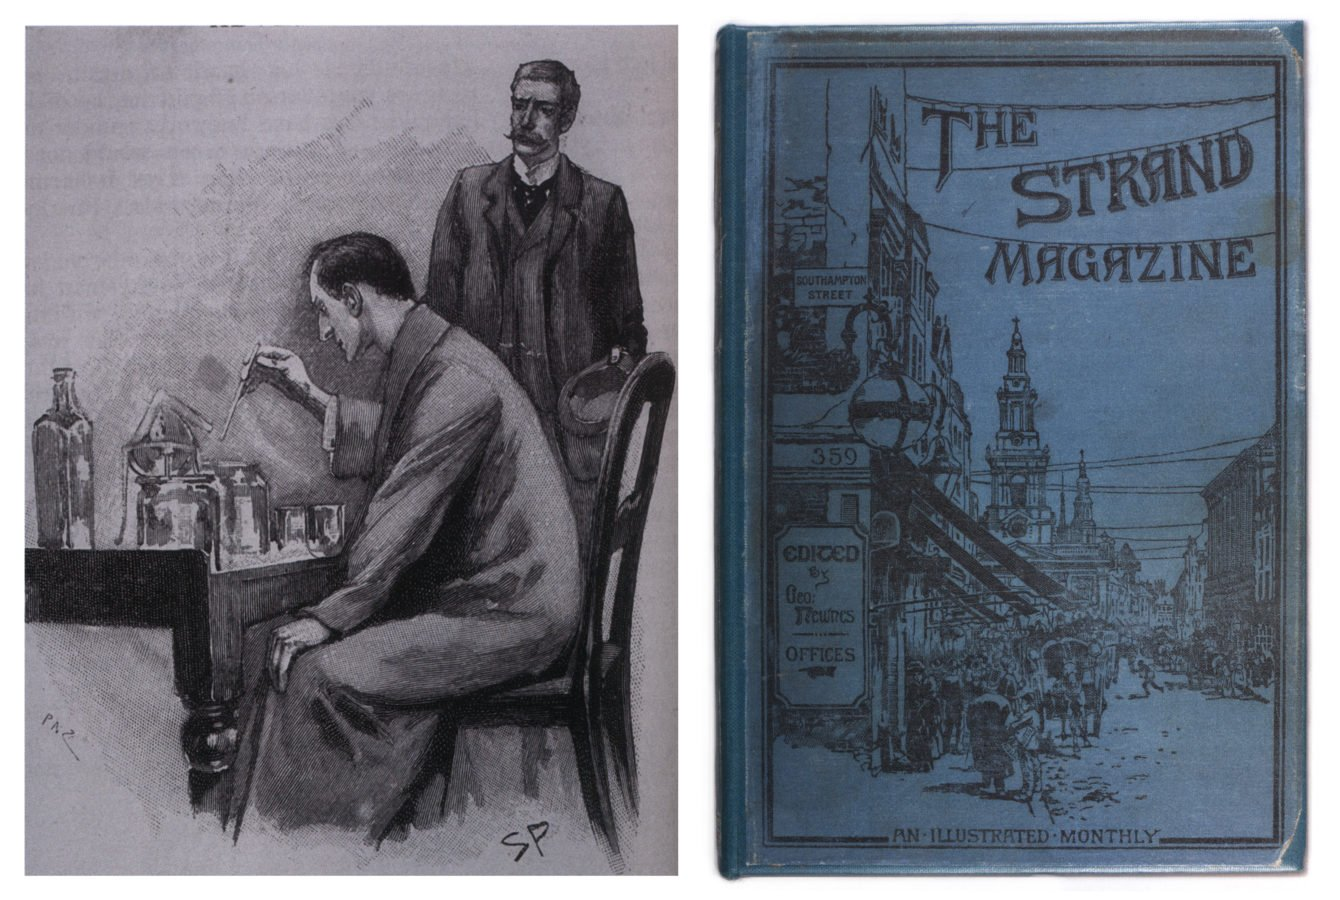 Five Things Everyone Should Know About the Victorians: Left: Sidney Paget, Dr. Watson Watching Sherlock Holmes Working on Chemical Investigation, from The Adventure of the Naval Treaty in: Conan Doyle's Adventures of Sherlock Holmes in The Strand magazine. Right: Front cover of The Strand Magazine, an illustrated monthly, 1891, London. British Library.